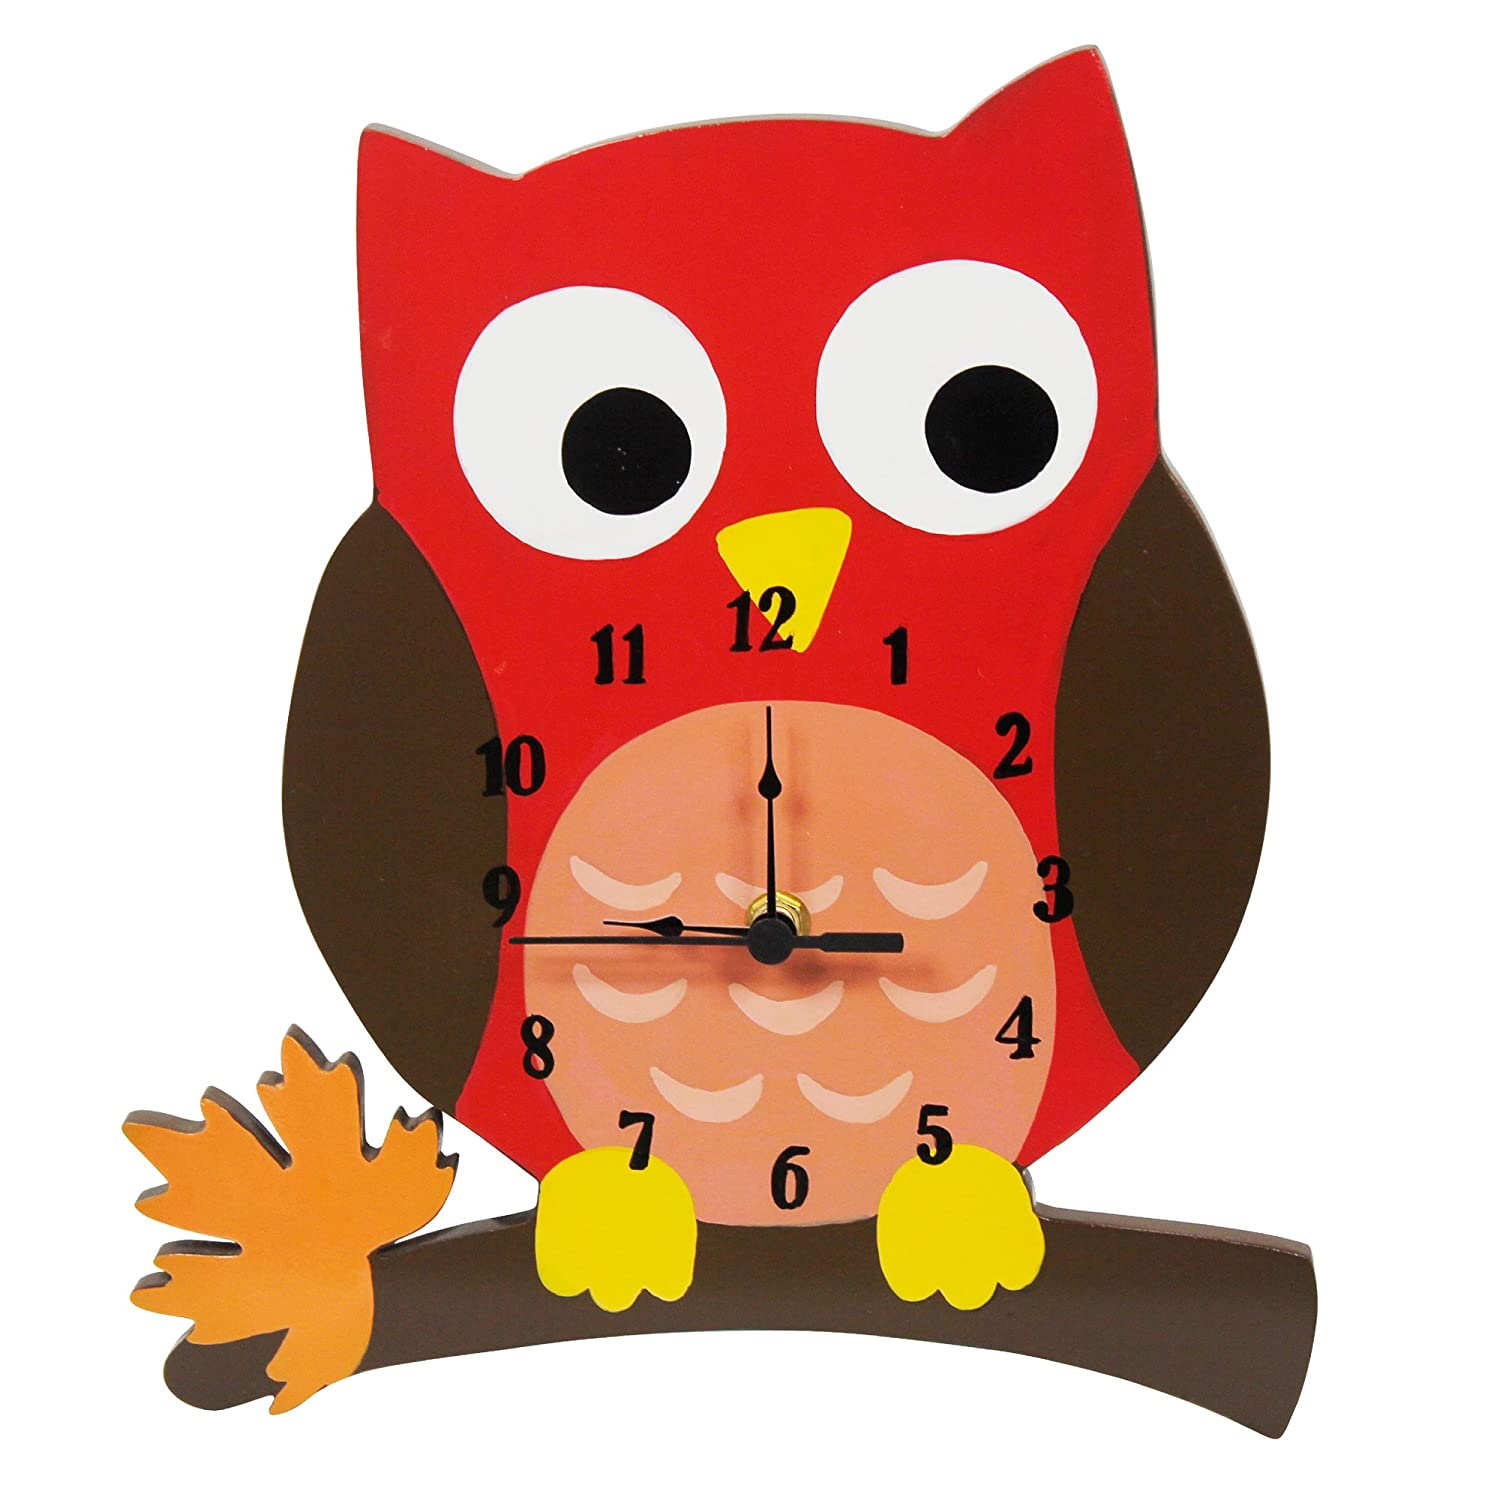 Fantasy Fields - Enchanted Woodland themed Kids Wall Clock Best for Nursery Room Decor | Hand Painted Details | Child Friendly Water-based Paint Teamson TD-11706A